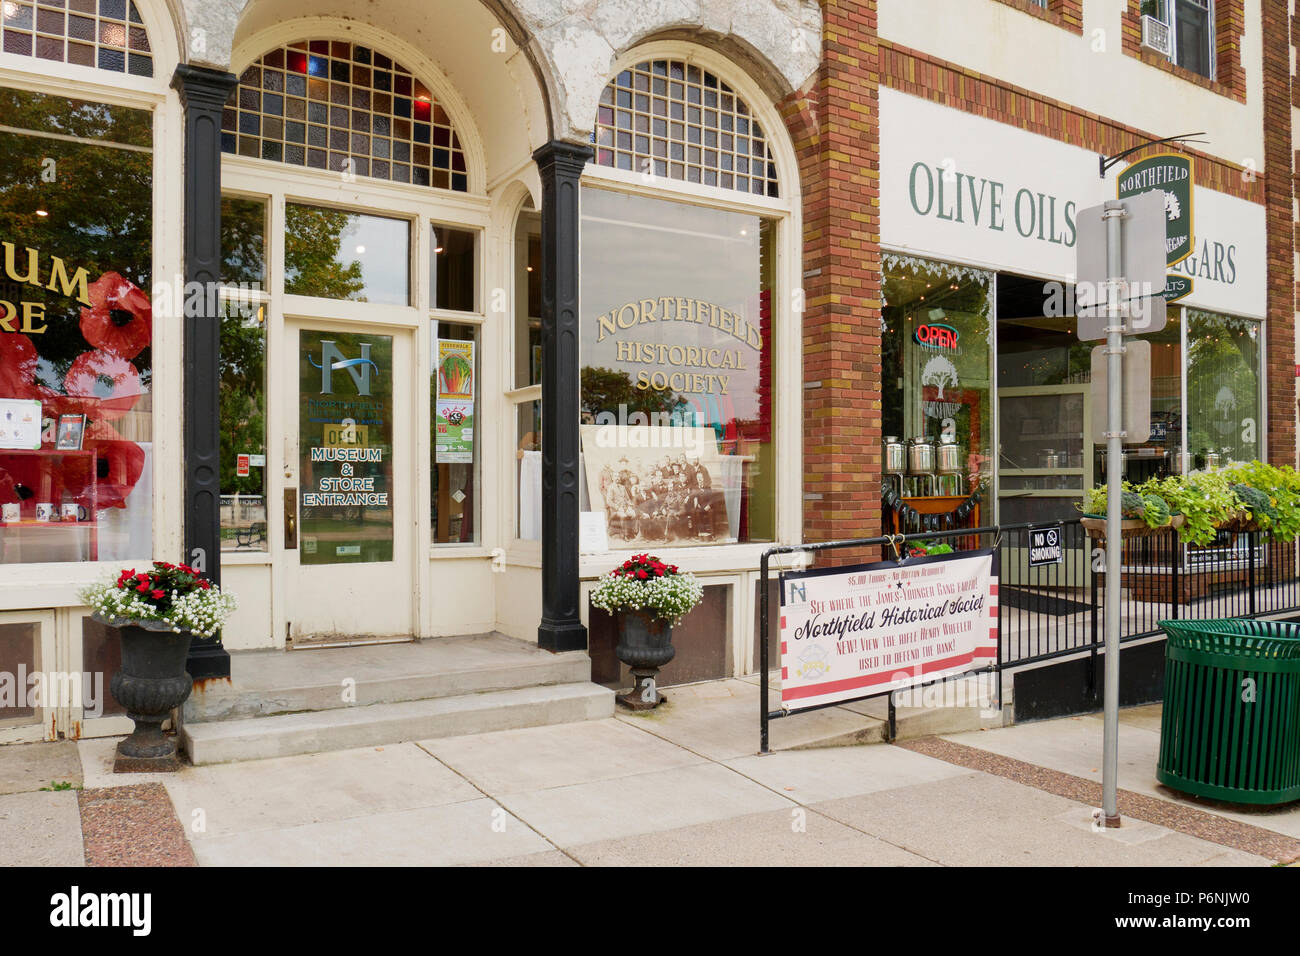 Northfield Historical Society, Scriver Building. Northfield, Minnesota, site of failed James Younger Gang bank robery. - Stock Image